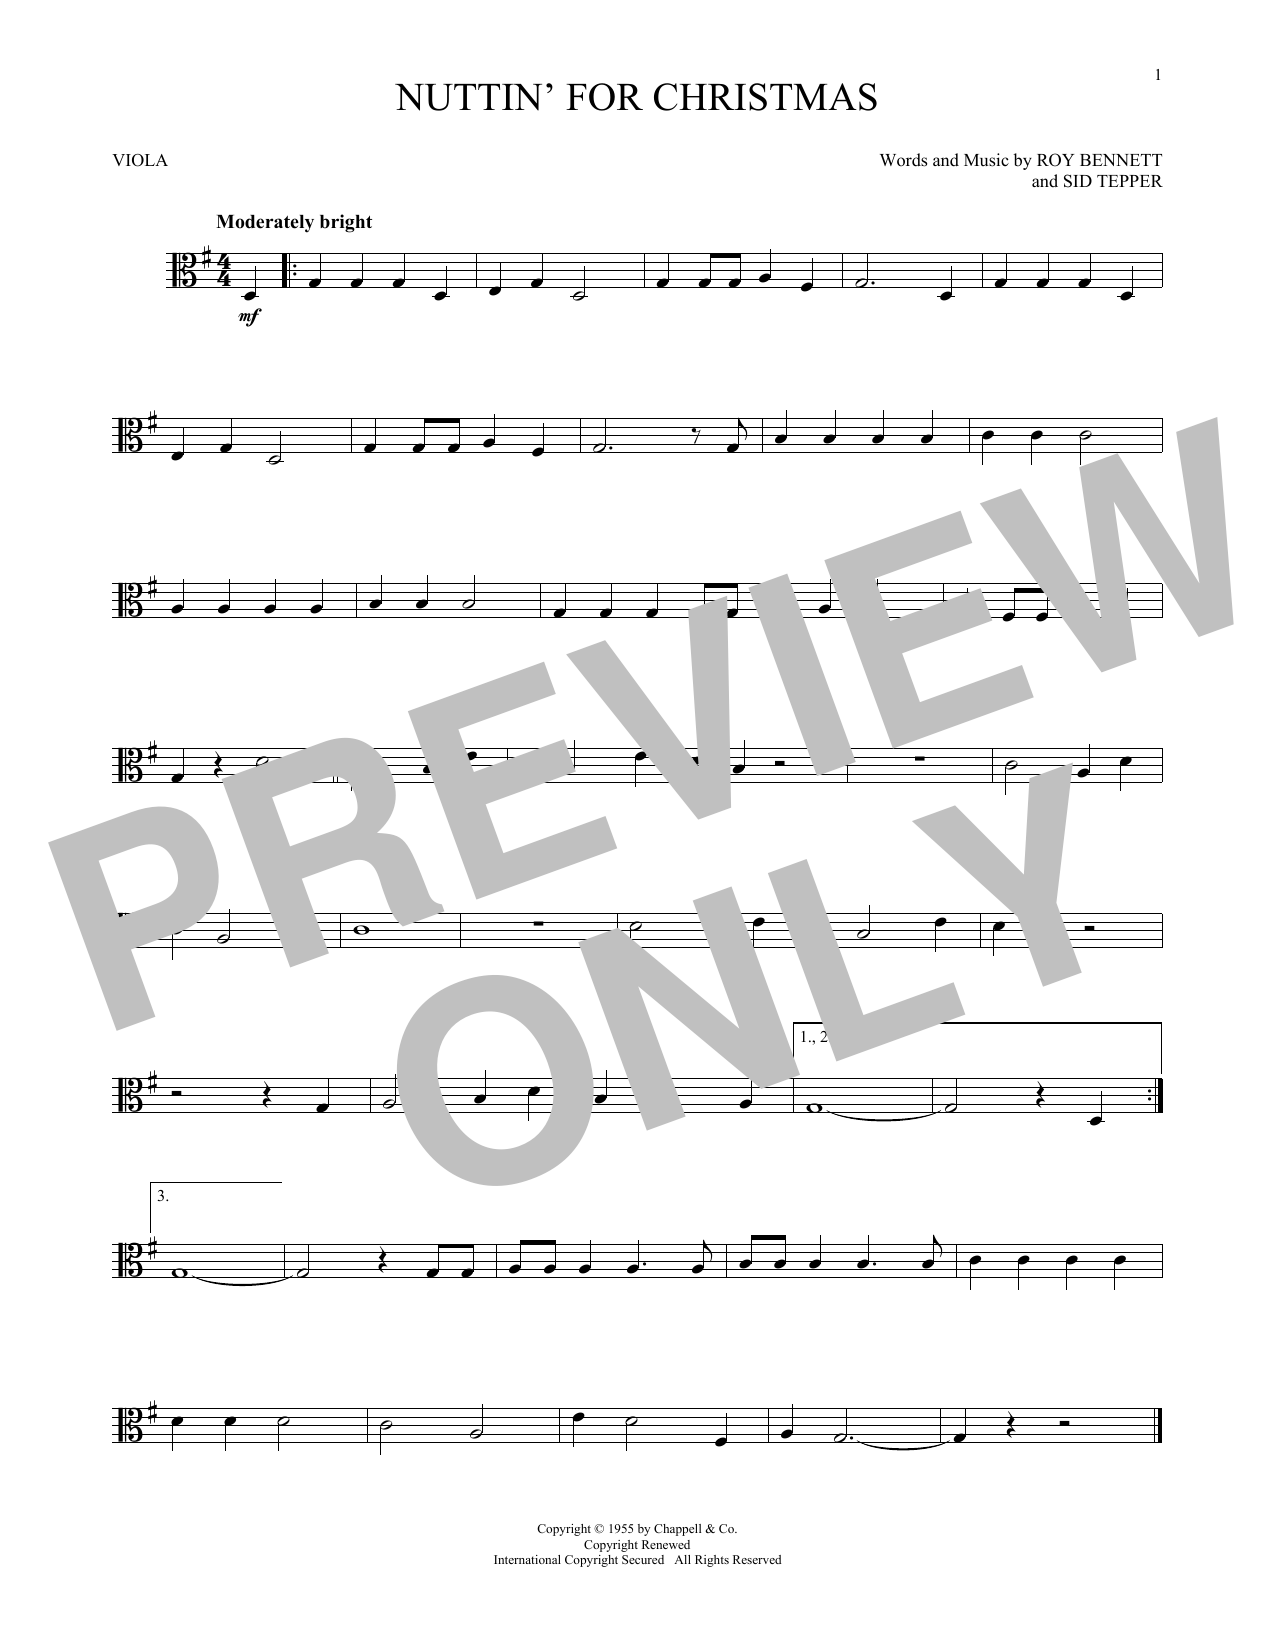 Nuttin\' For Christmas Sheet Music by Sid Tepper - Noteflight Marketplace